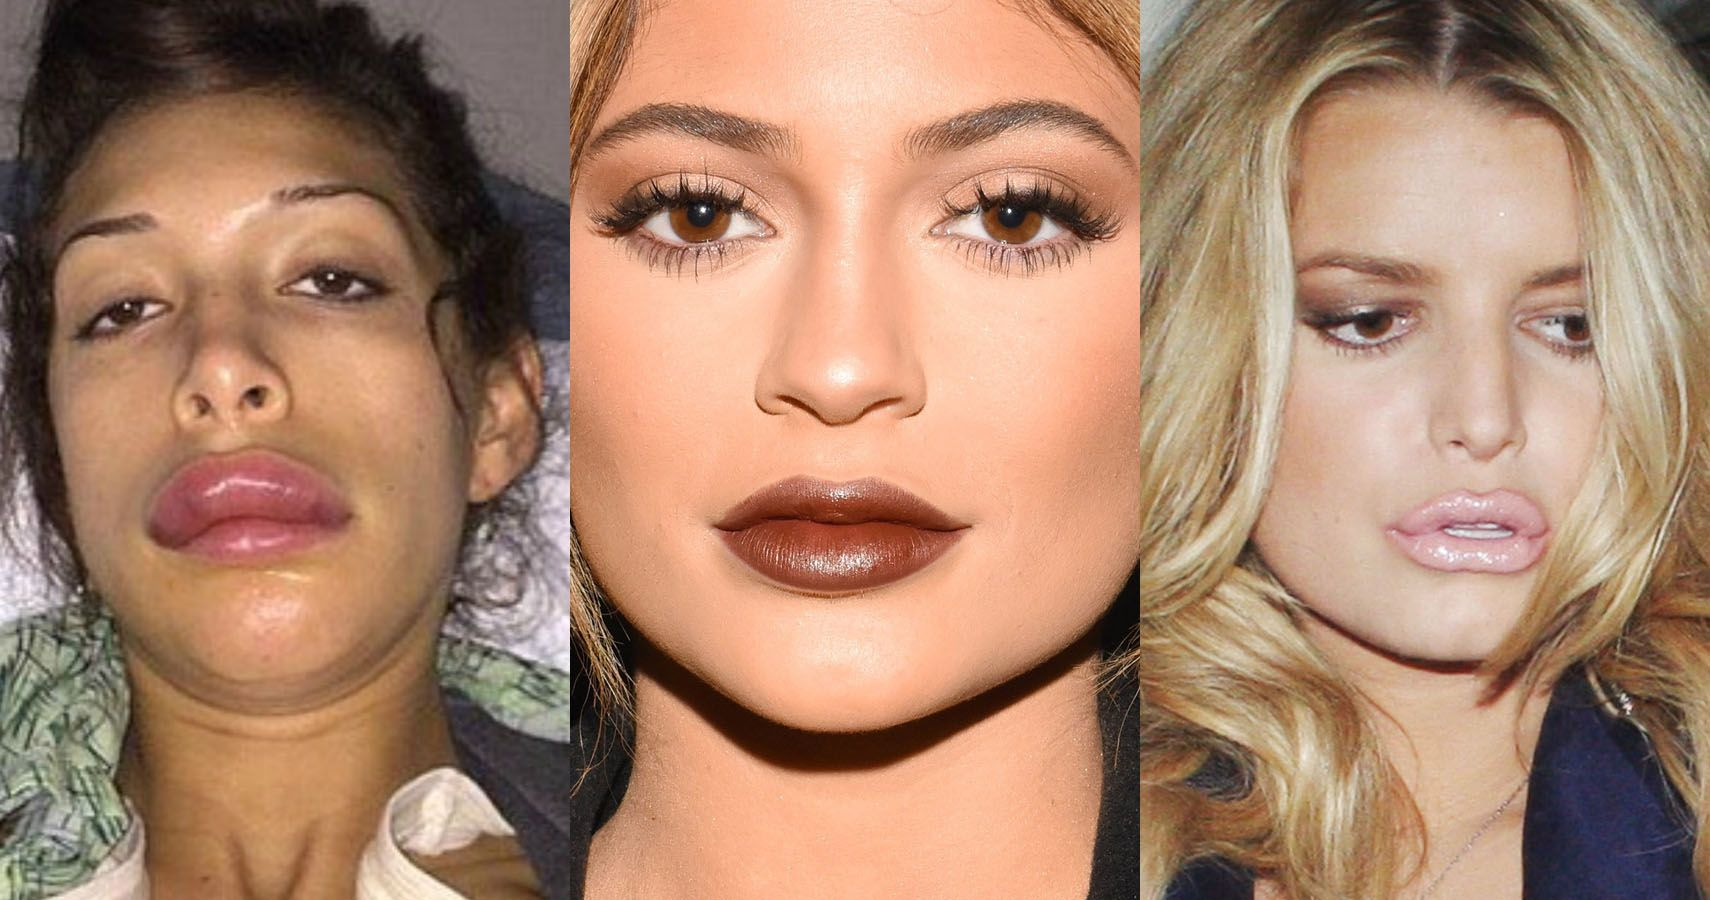 20 Celebrities With The Hottest Lips - MensXP.com